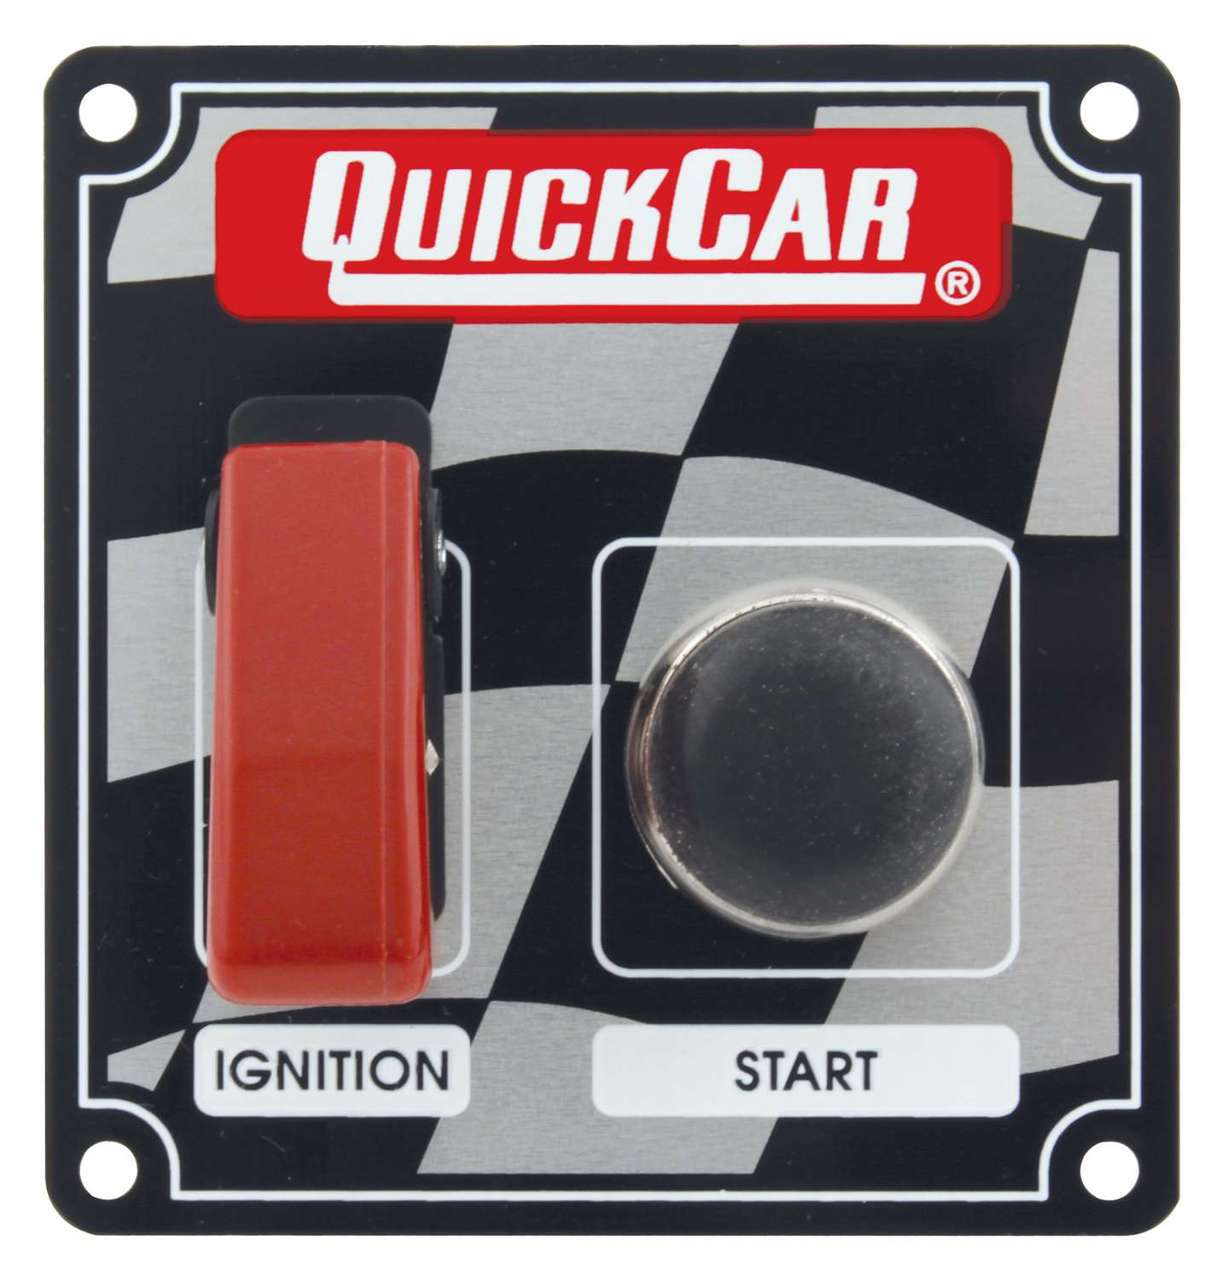 qc50103 Quickcar Ignition Control Panel Wiring Diagram on